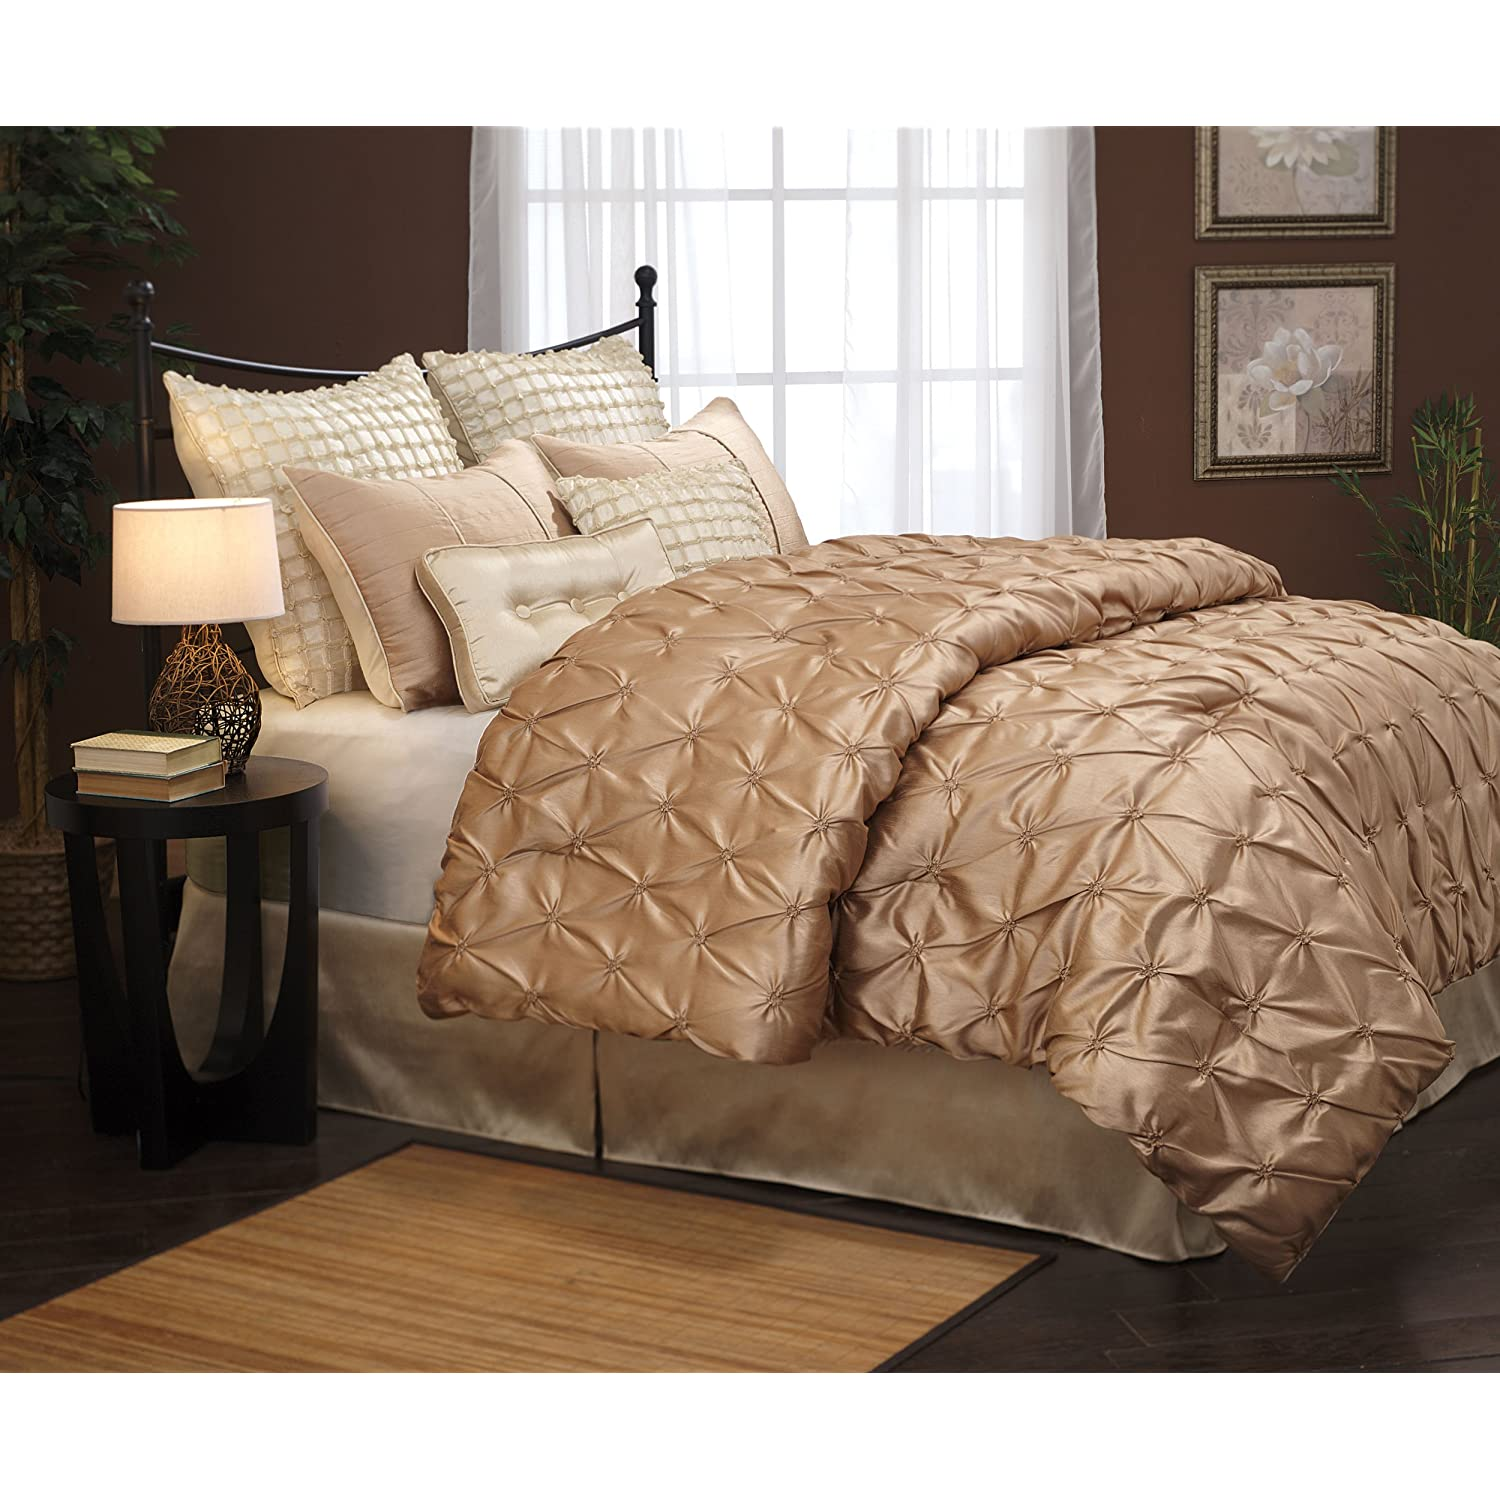 Best 28 Discount Comforter Sets Comforters And Comforter Sets At Discount Wonderful